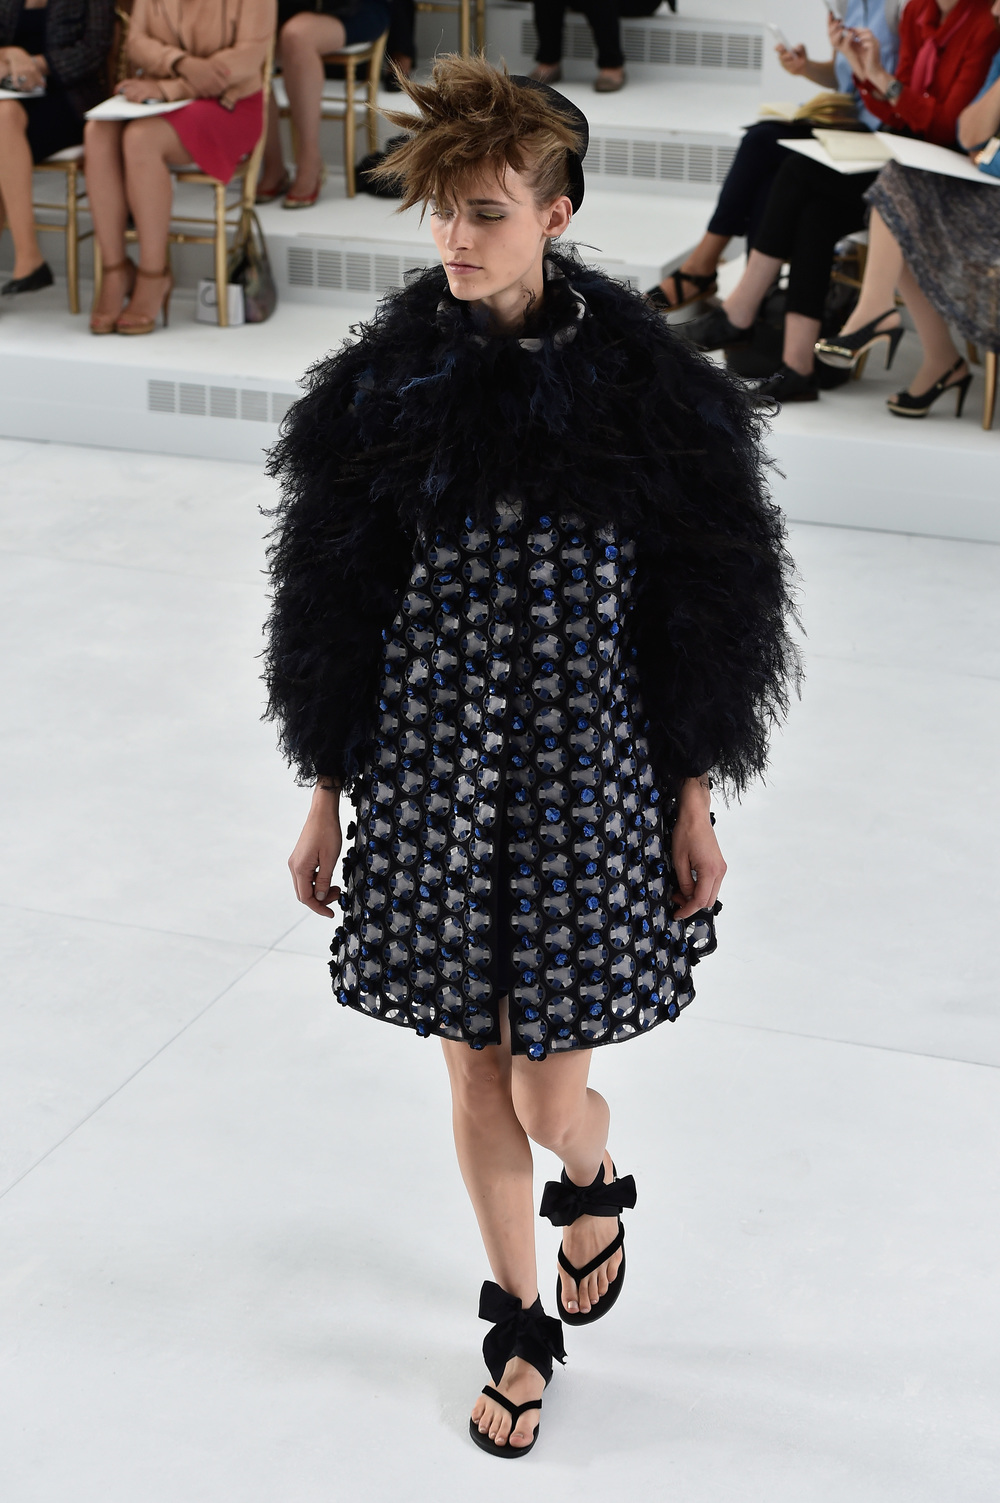 chanel-runway-paris-fashion-week-haute-couture-fall-winter-2014-2015-1.jpg